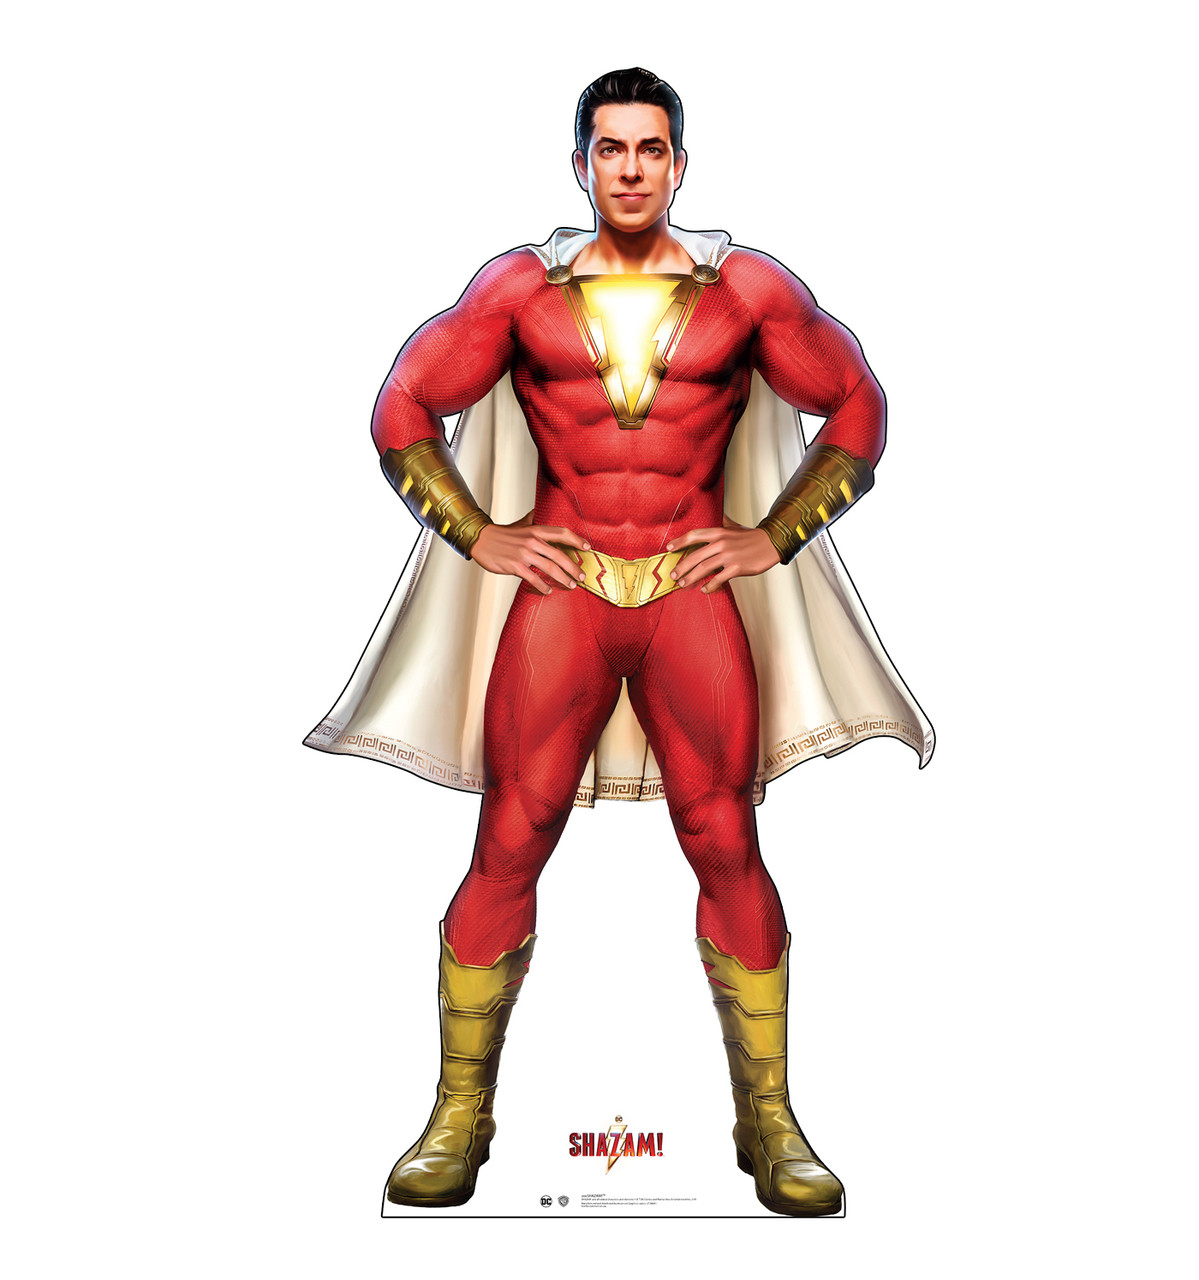 Life-size cardboard standee of the super hero Shazam!